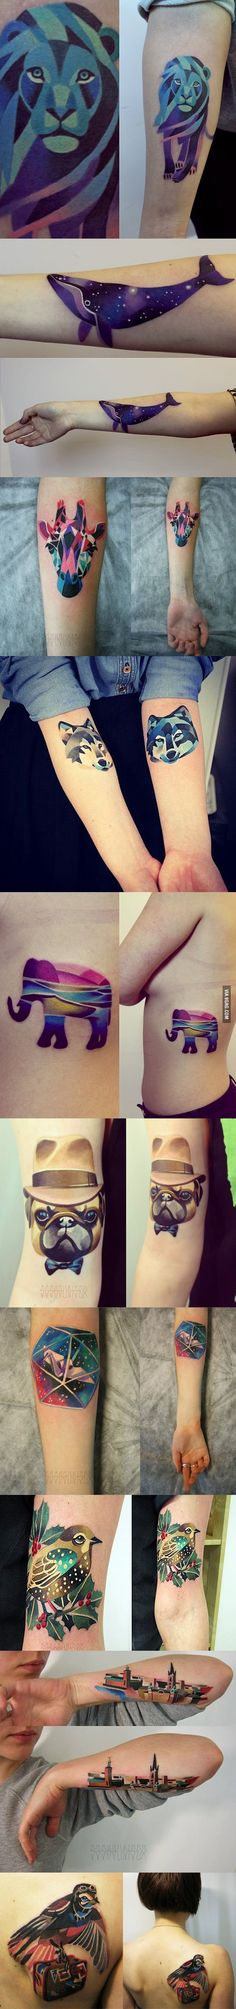 Pretty f'kin cool tattoos